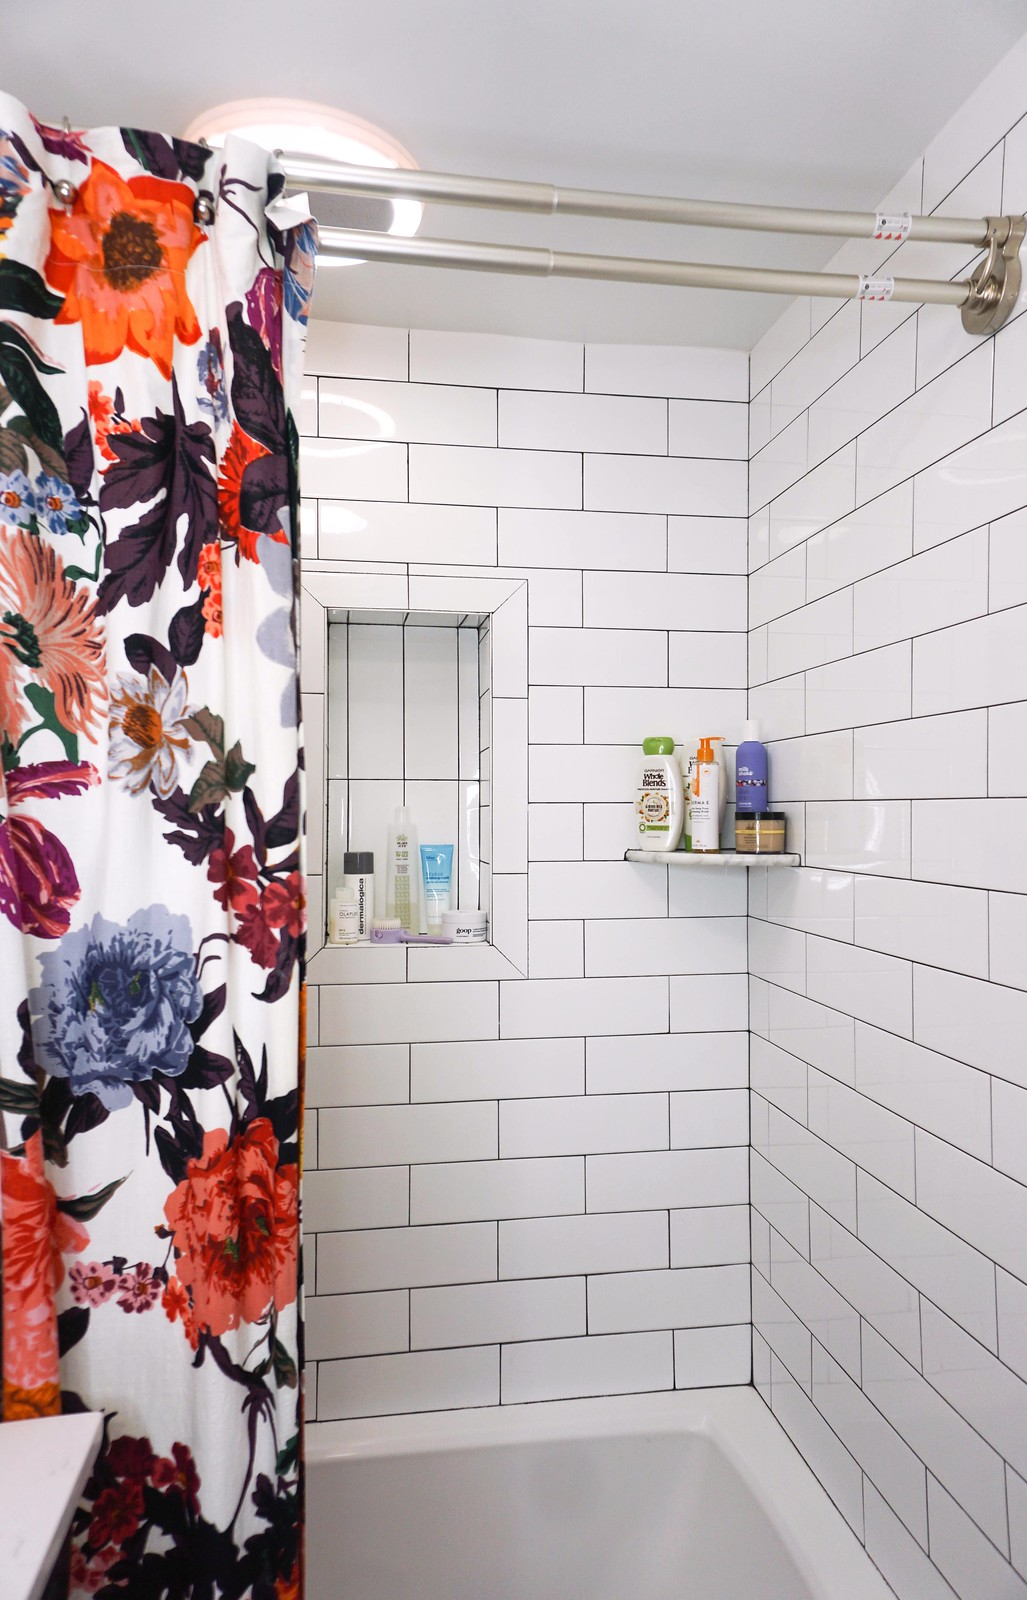 Floor to Ceiling White Subway Tile Black Grout | 5 Practical Tips for Designing a Small Bathroom | Eclectic Boho Colorful Small Bathroom Inspiration